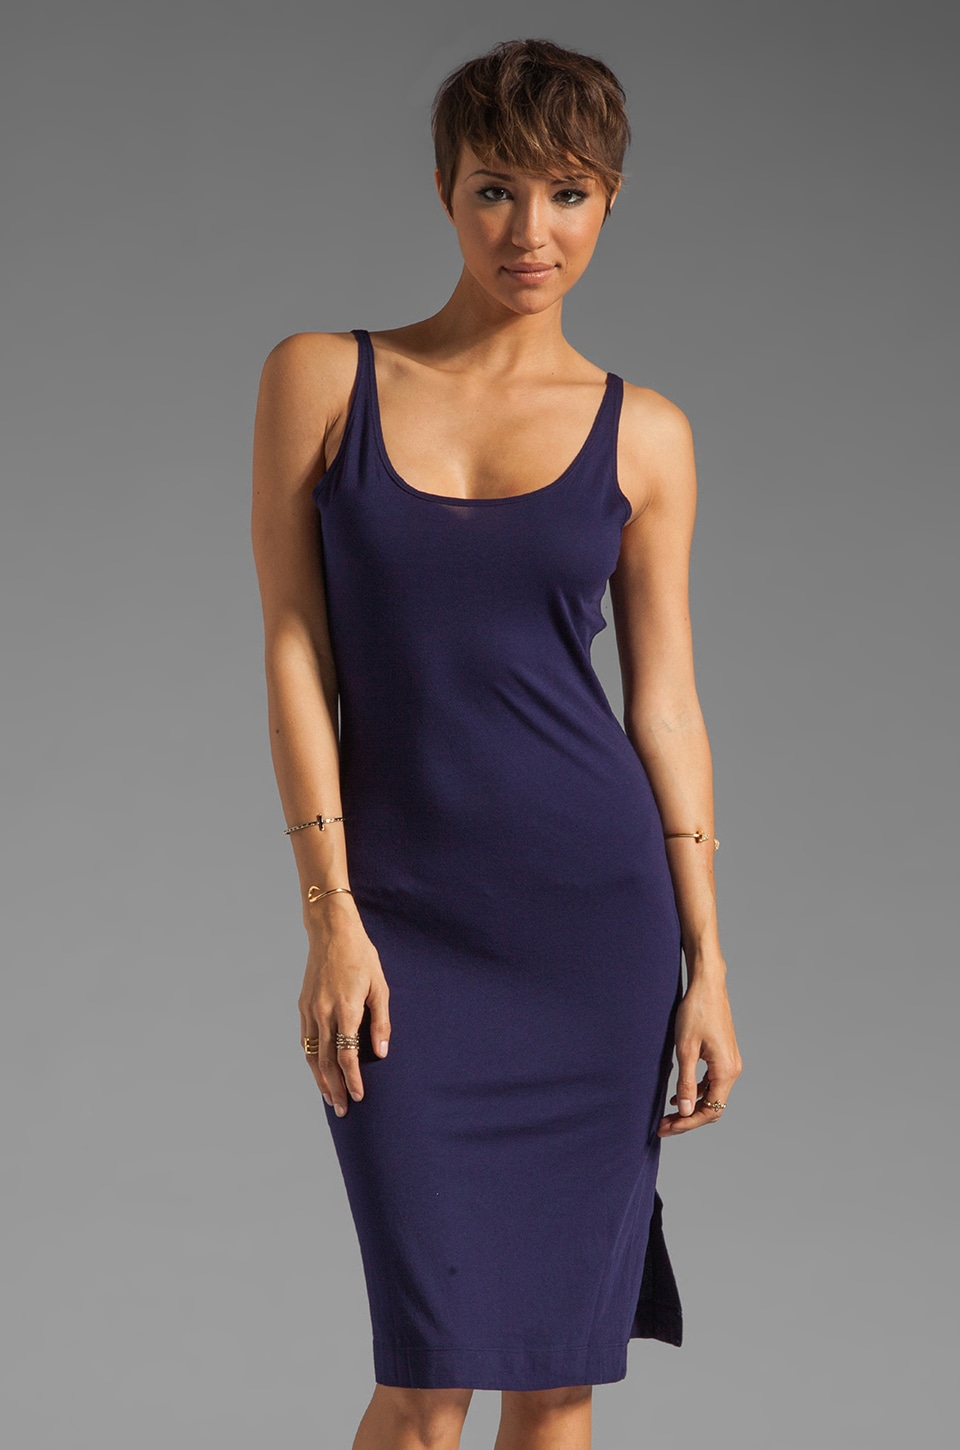 Bobi Modal Jersey V Back Tank Dress in Yacht